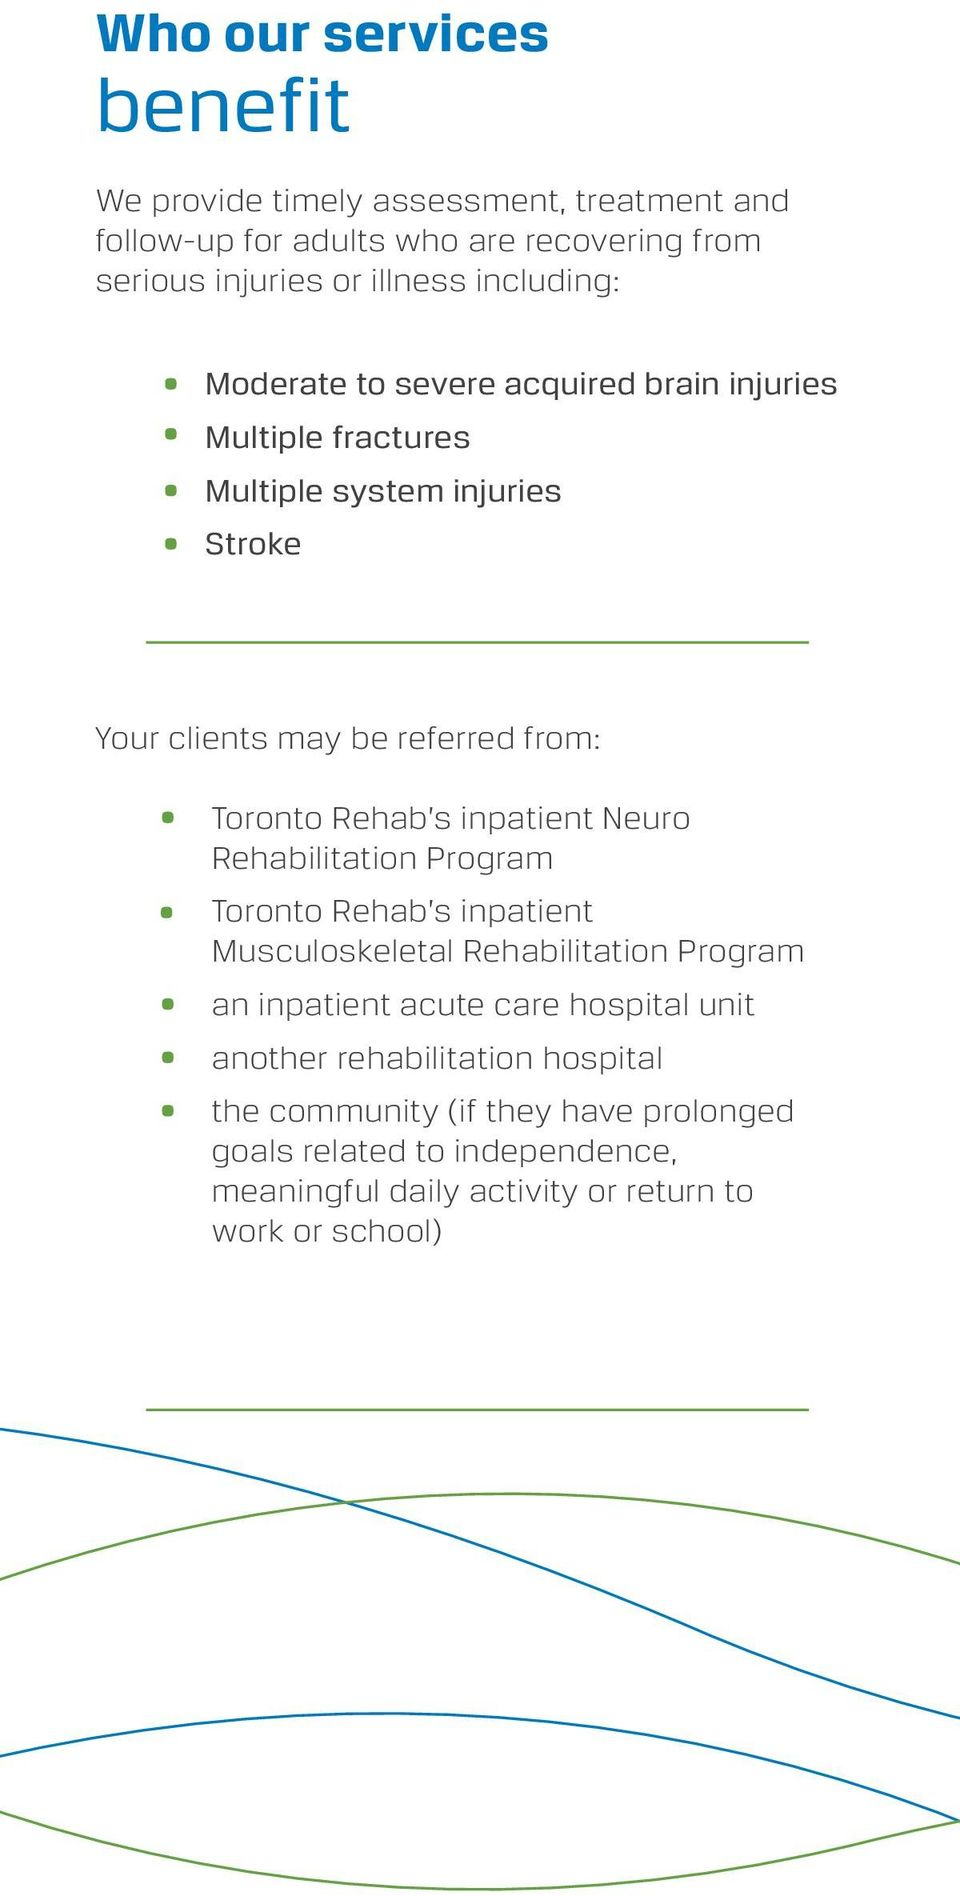 Rehab s inpatient Neuro Rehabilitation Program Toronto Rehab s inpatient Musculoskeletal Rehabilitation Program an inpatient acute care hospital